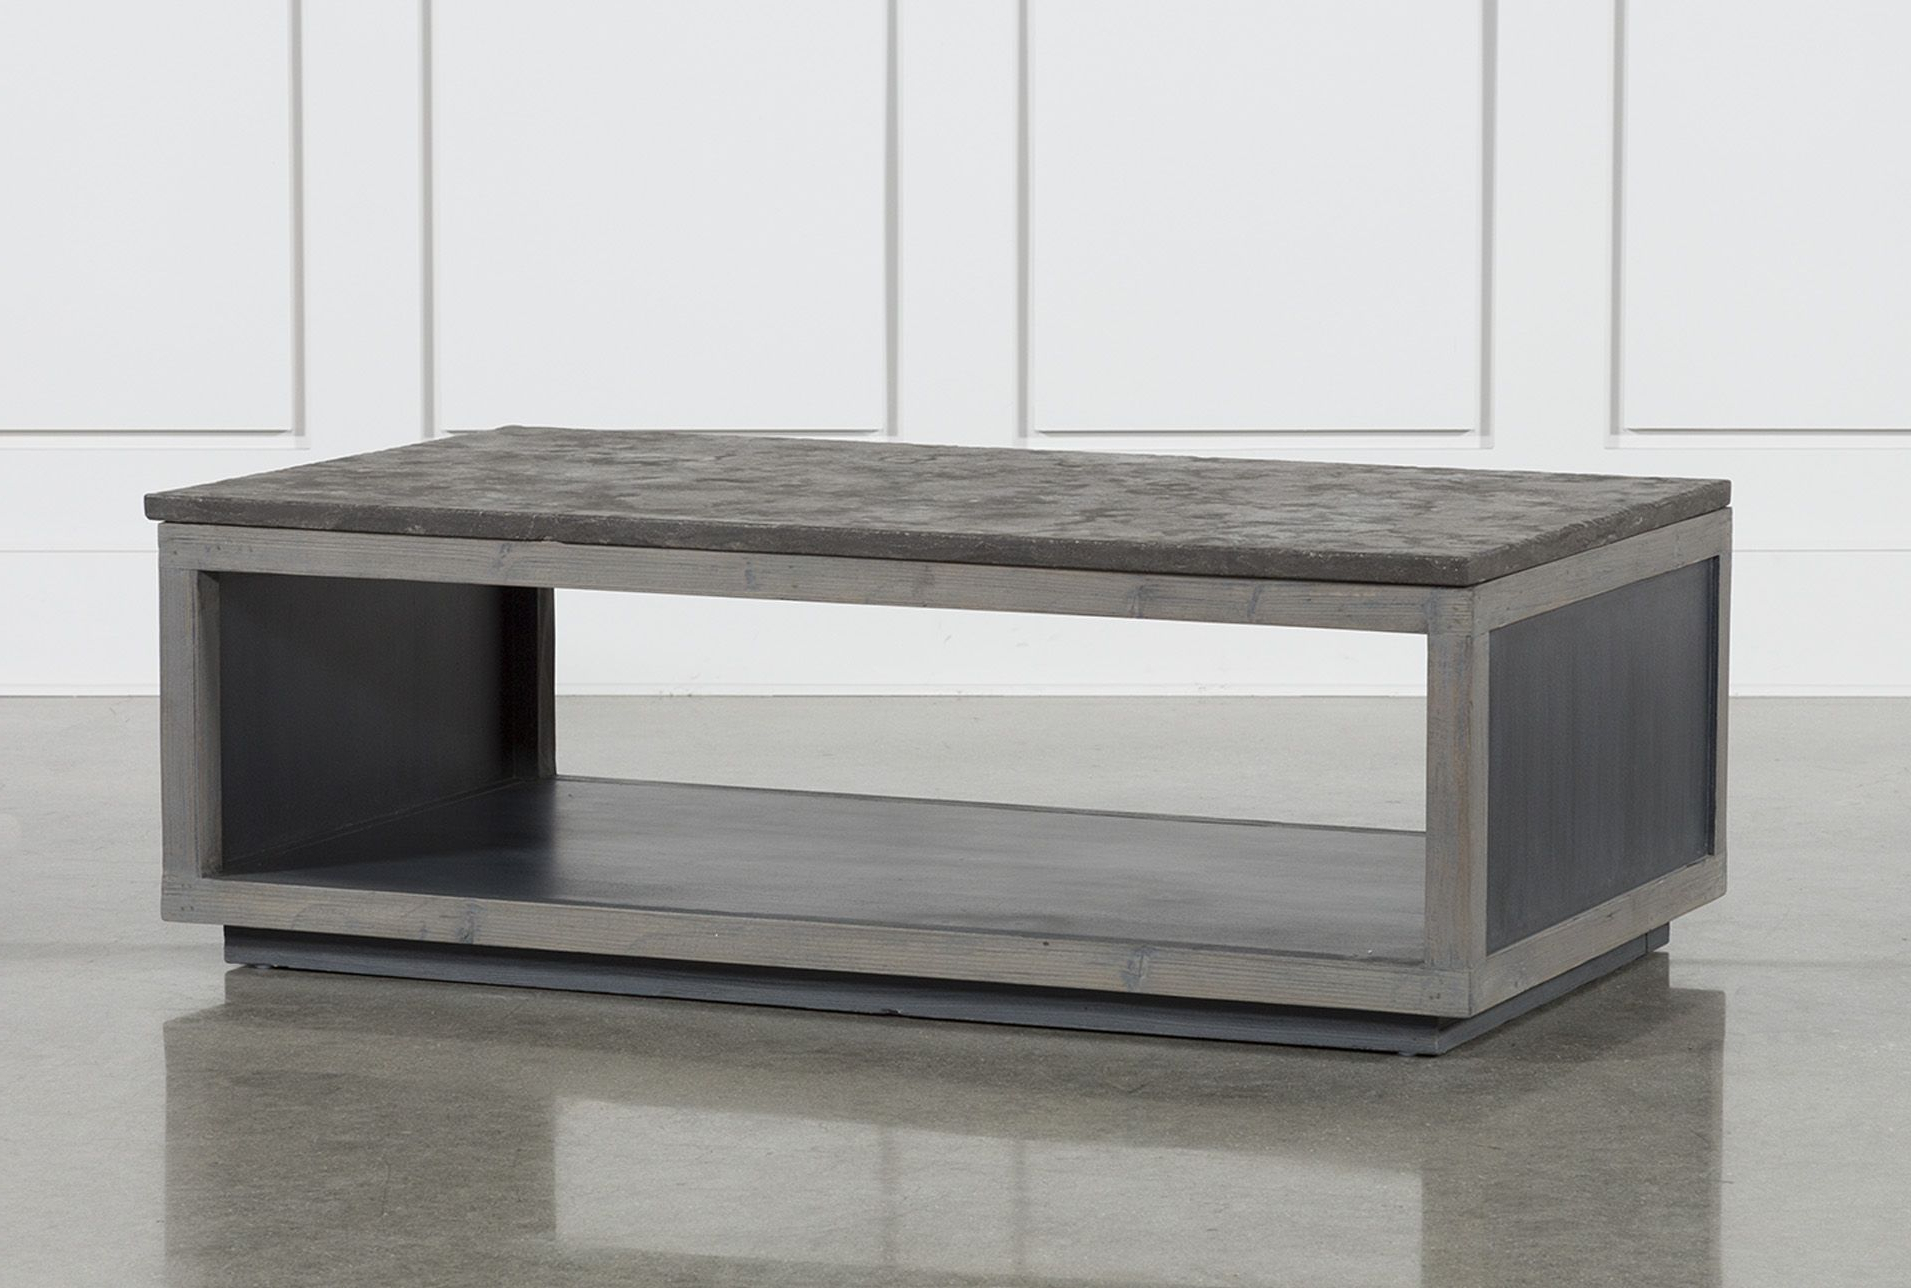 Stone Coffee Table And Within 2019 Moraga Barrel Coffee Tables (Gallery 9 of 20)